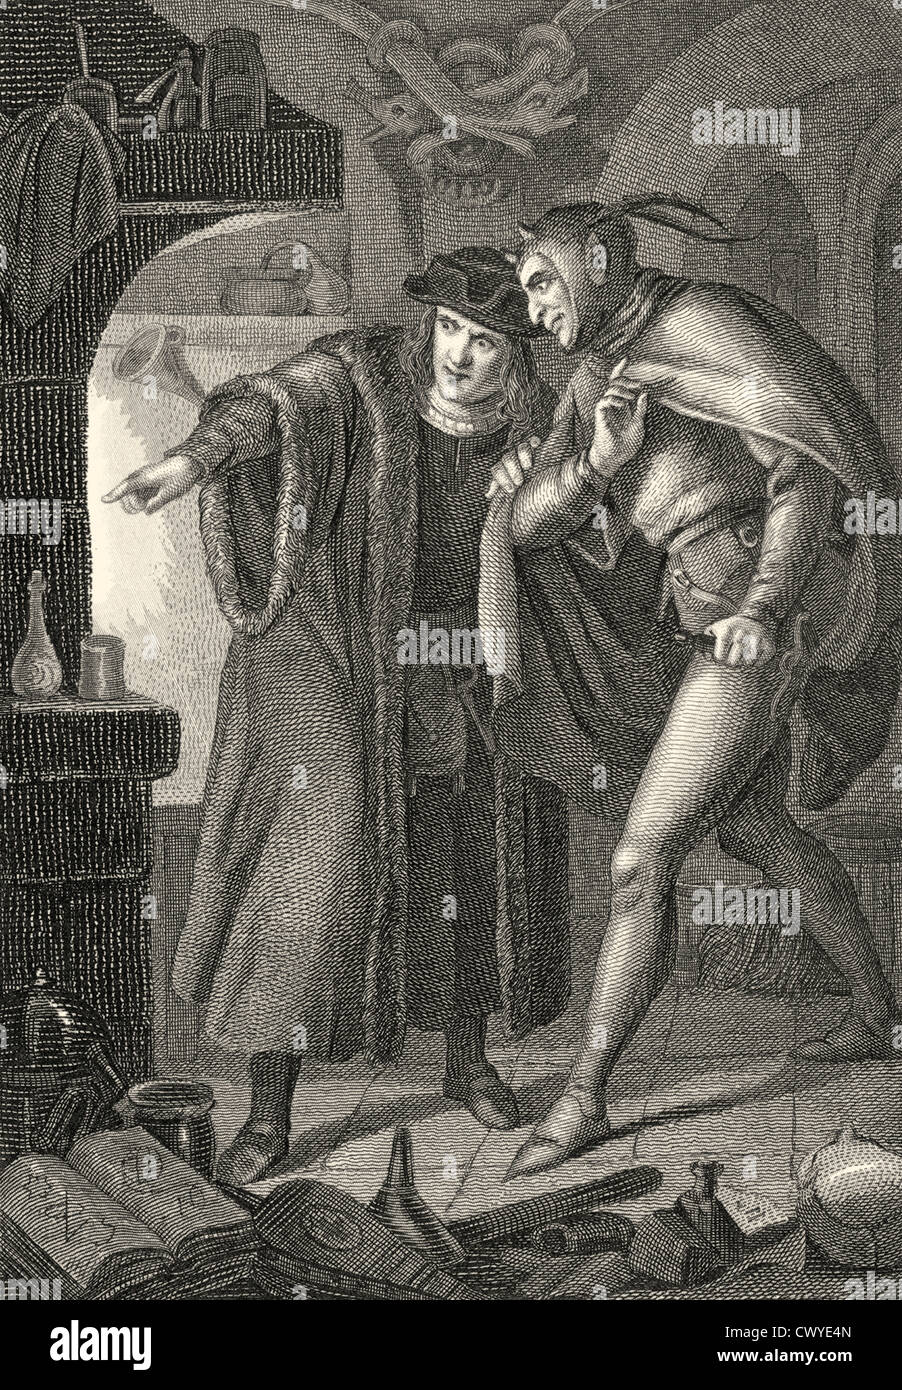 Cards on the table mathistopheles - Faustian Pact Between Mephistopheles Or Mephisto And Heinrich Faust Scene From The Tragedy Faust By